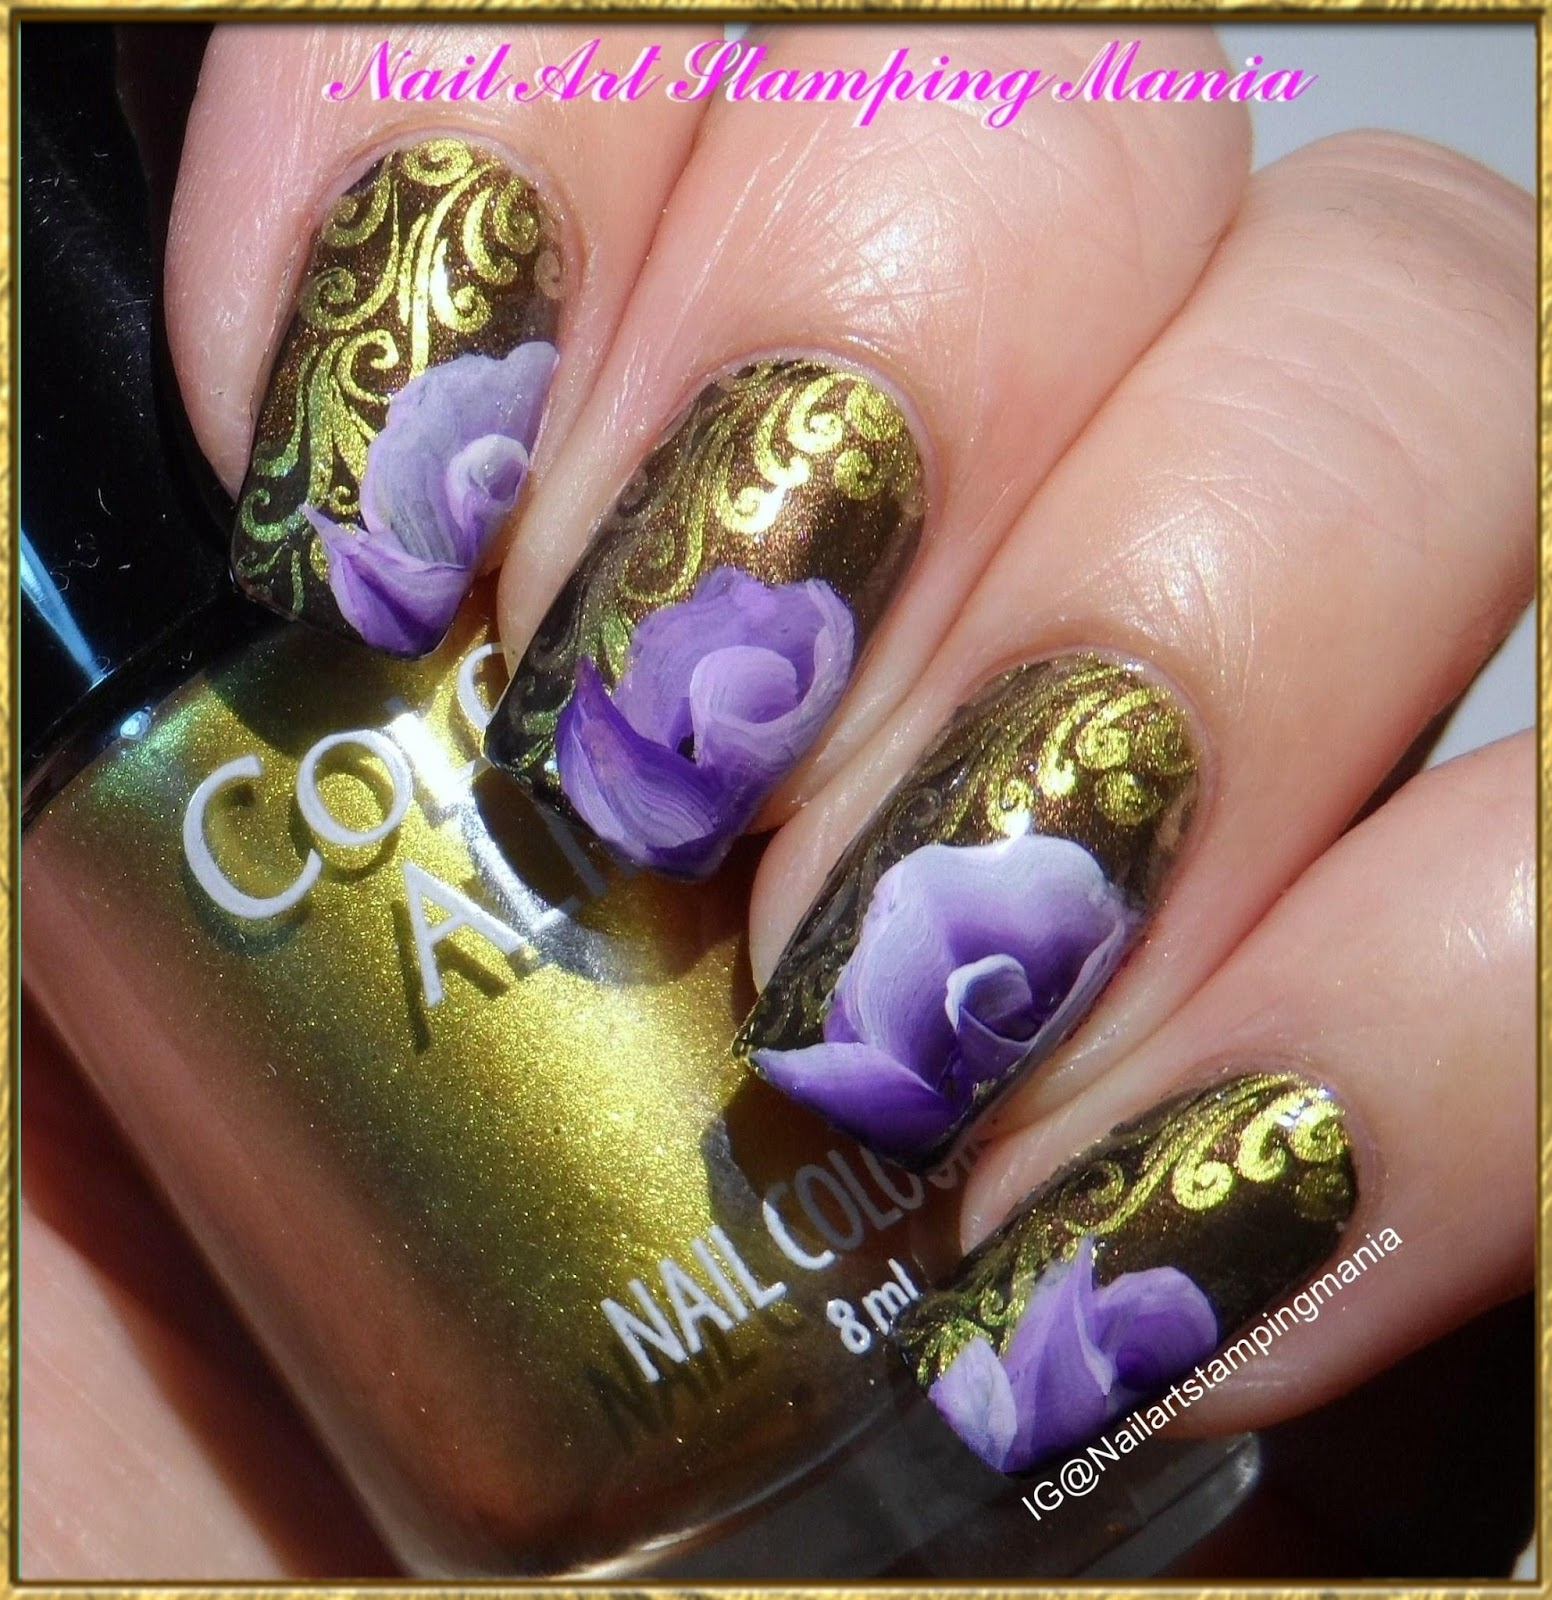 Nail Art Stamping Mania One Stroke Technique With Uberchic Uber Mat